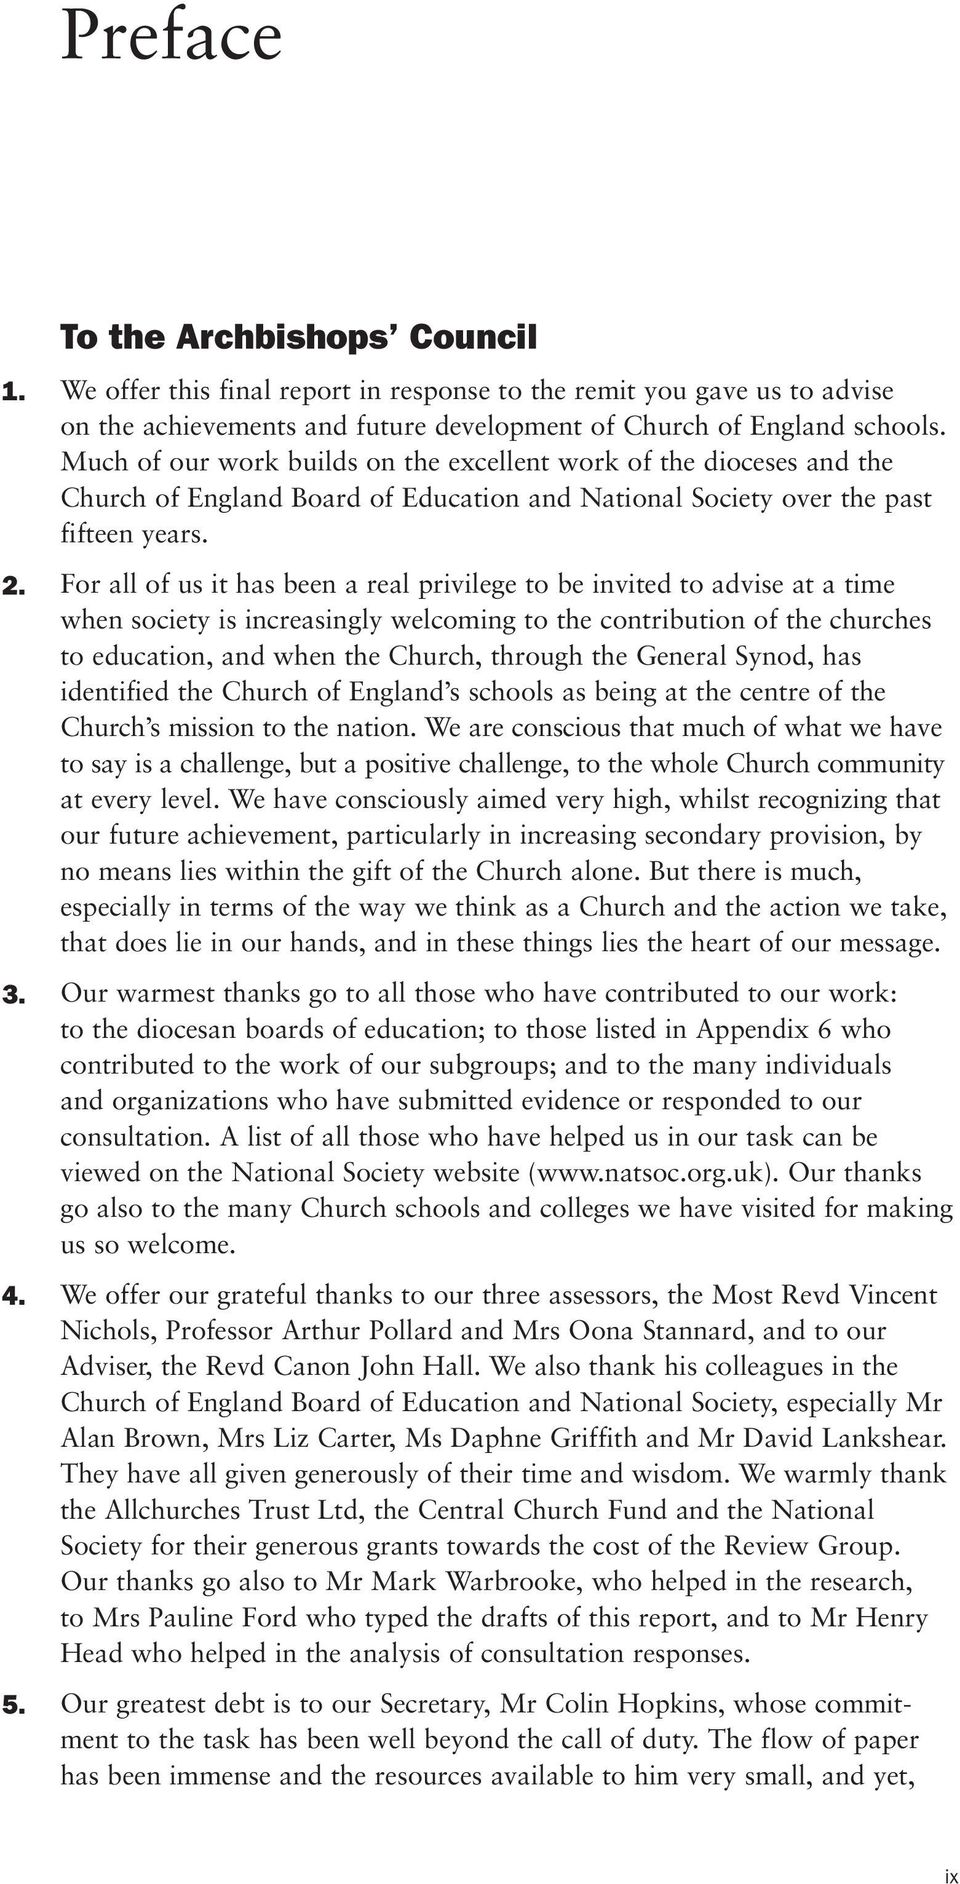 For all of us it has been a real privilege to be invited to advise at a time when society is increasingly welcoming to the contribution of the churches to education, and when the Church, through the